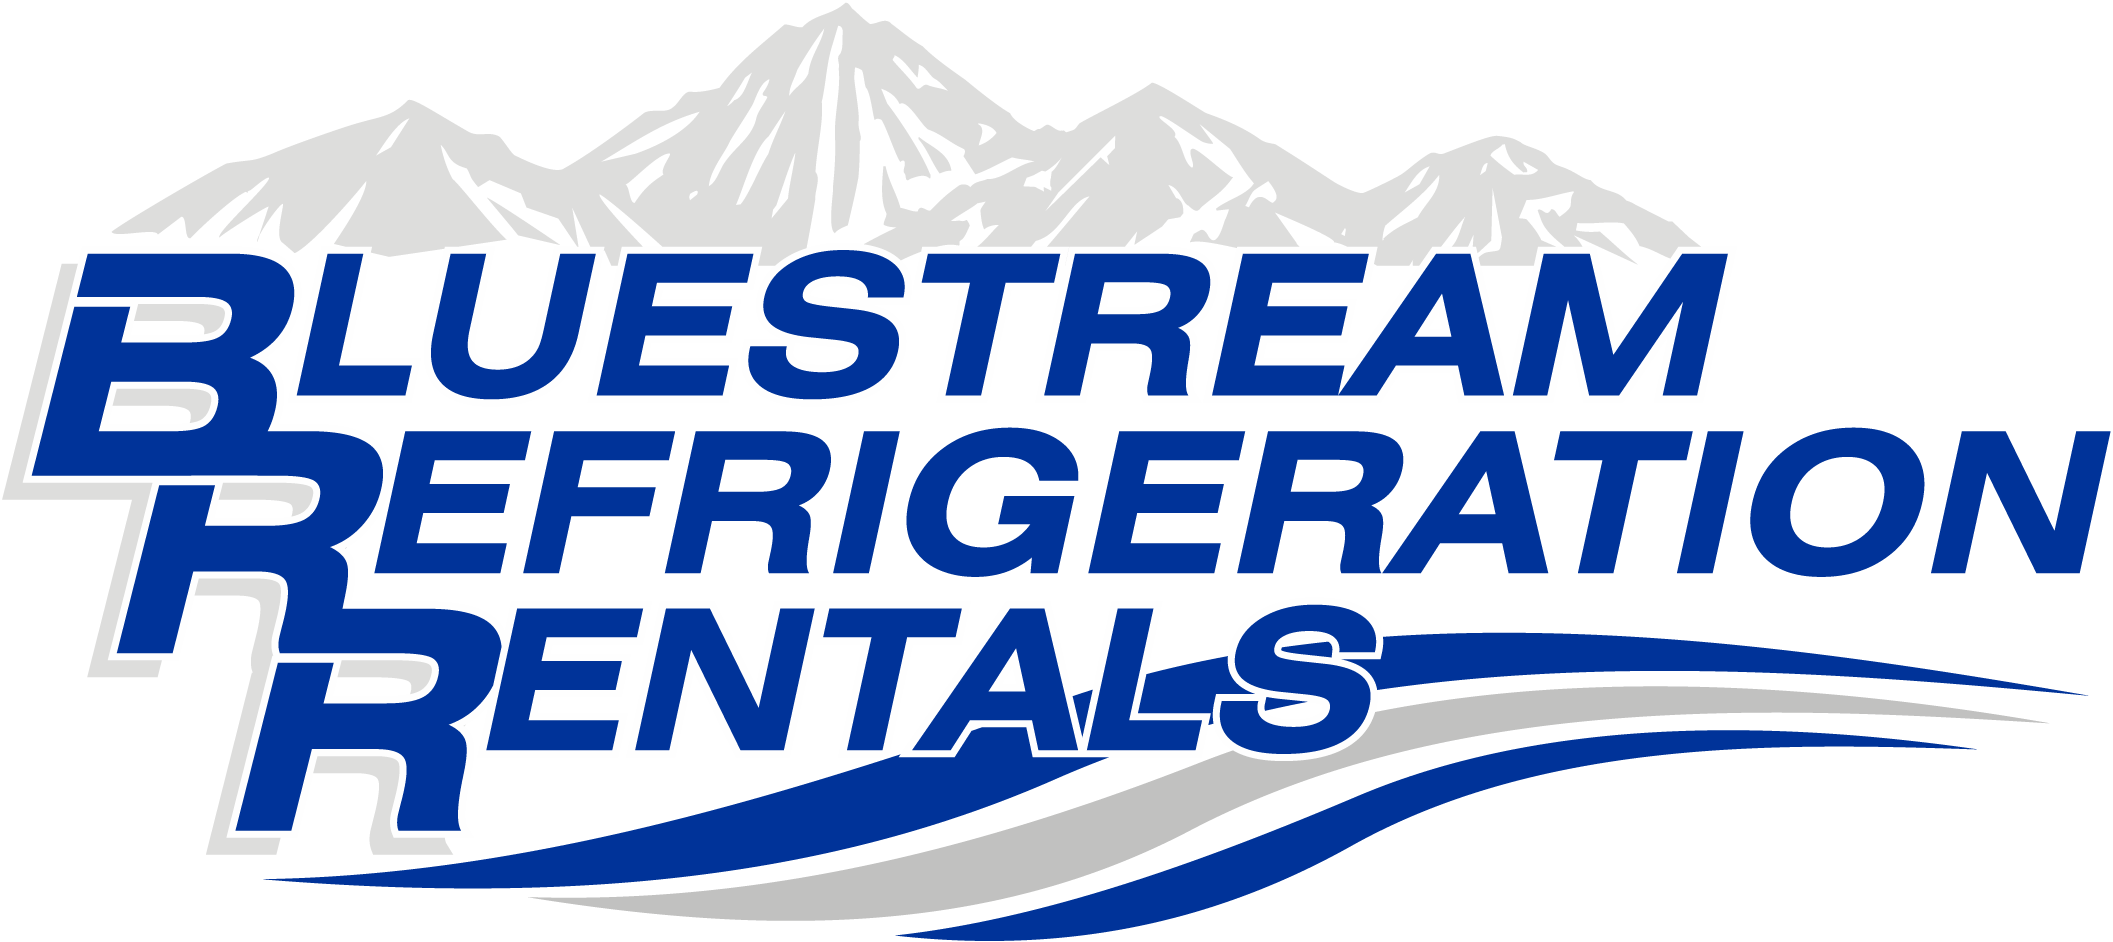 Bluestream Refrigeration Rentals